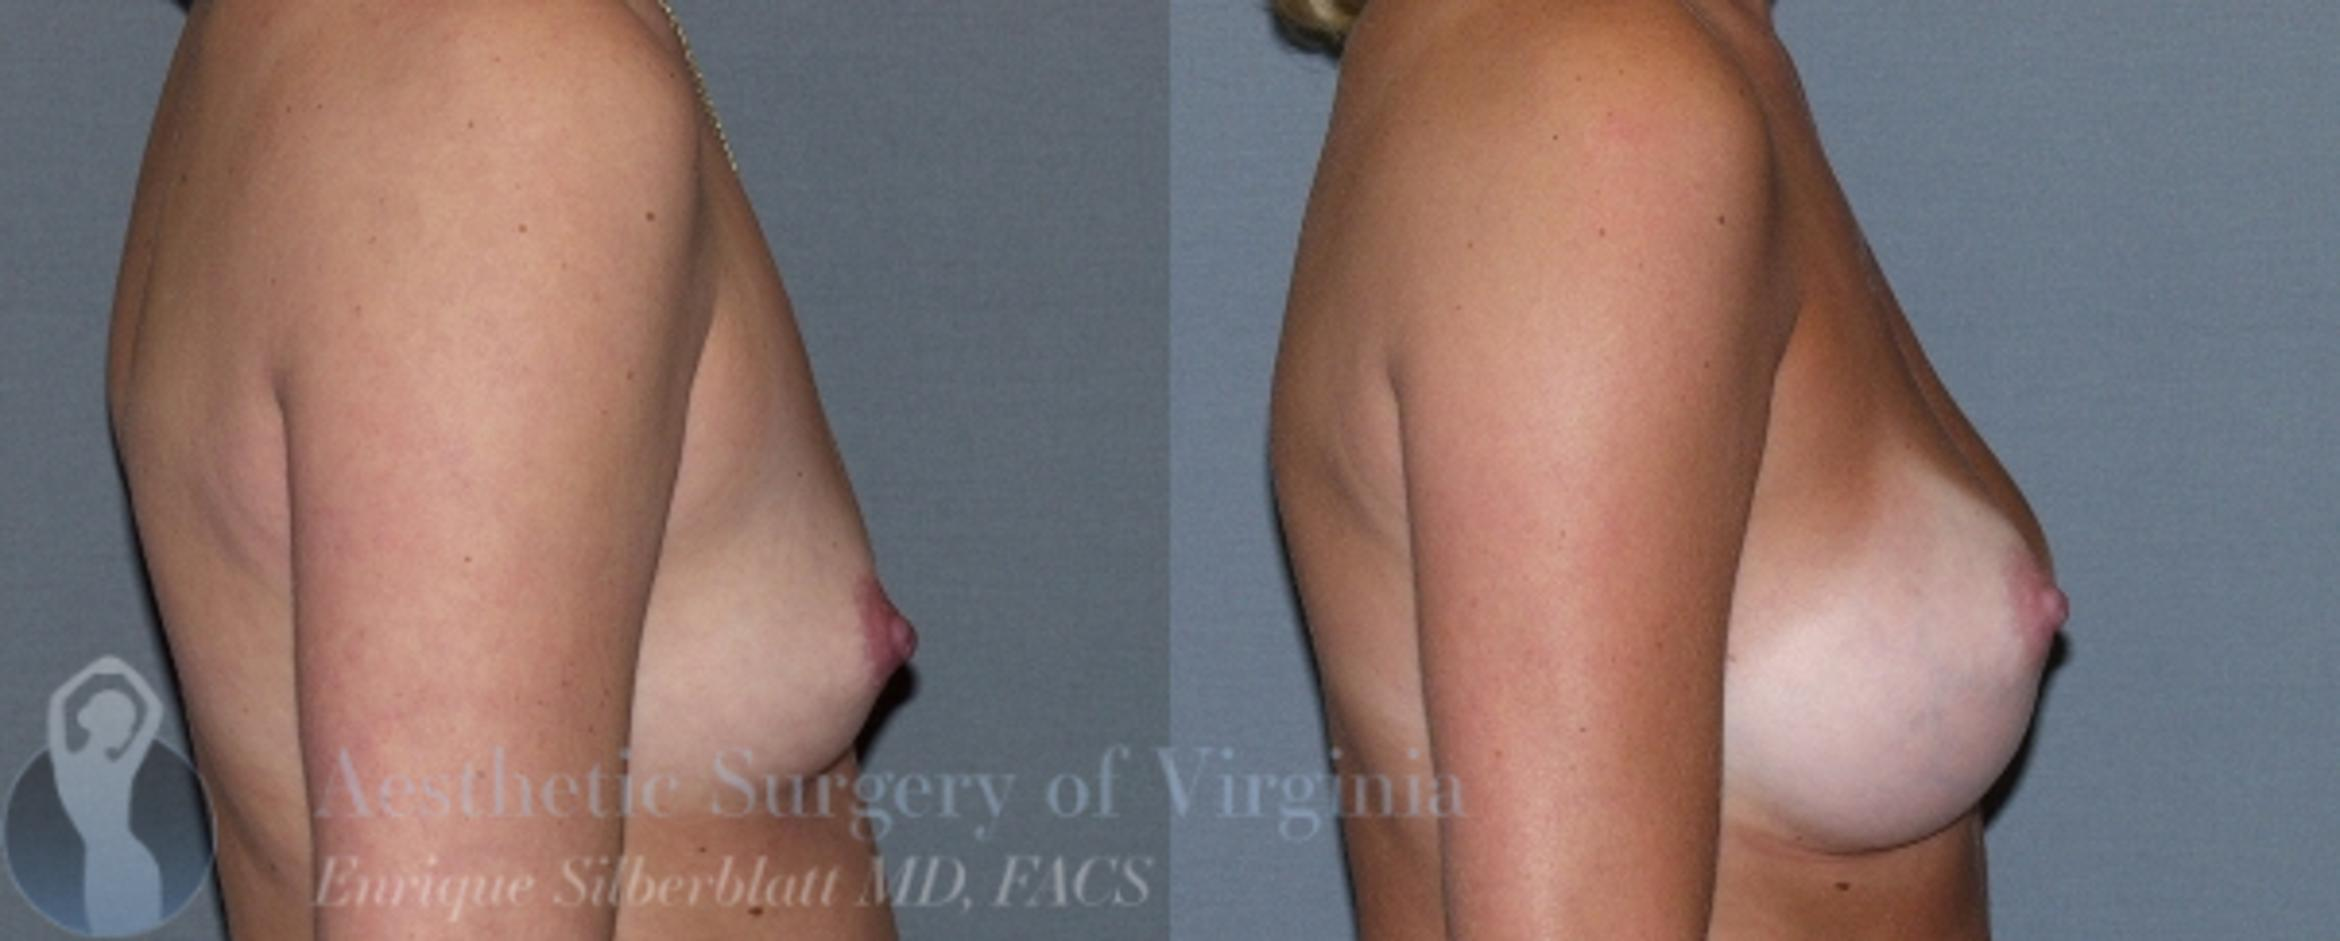 Breast Augmentation Case 6 Before & After View #5 | Roanoke, VA | Aesthetic Surgery of Virginia: Enrique Silberblatt, MD